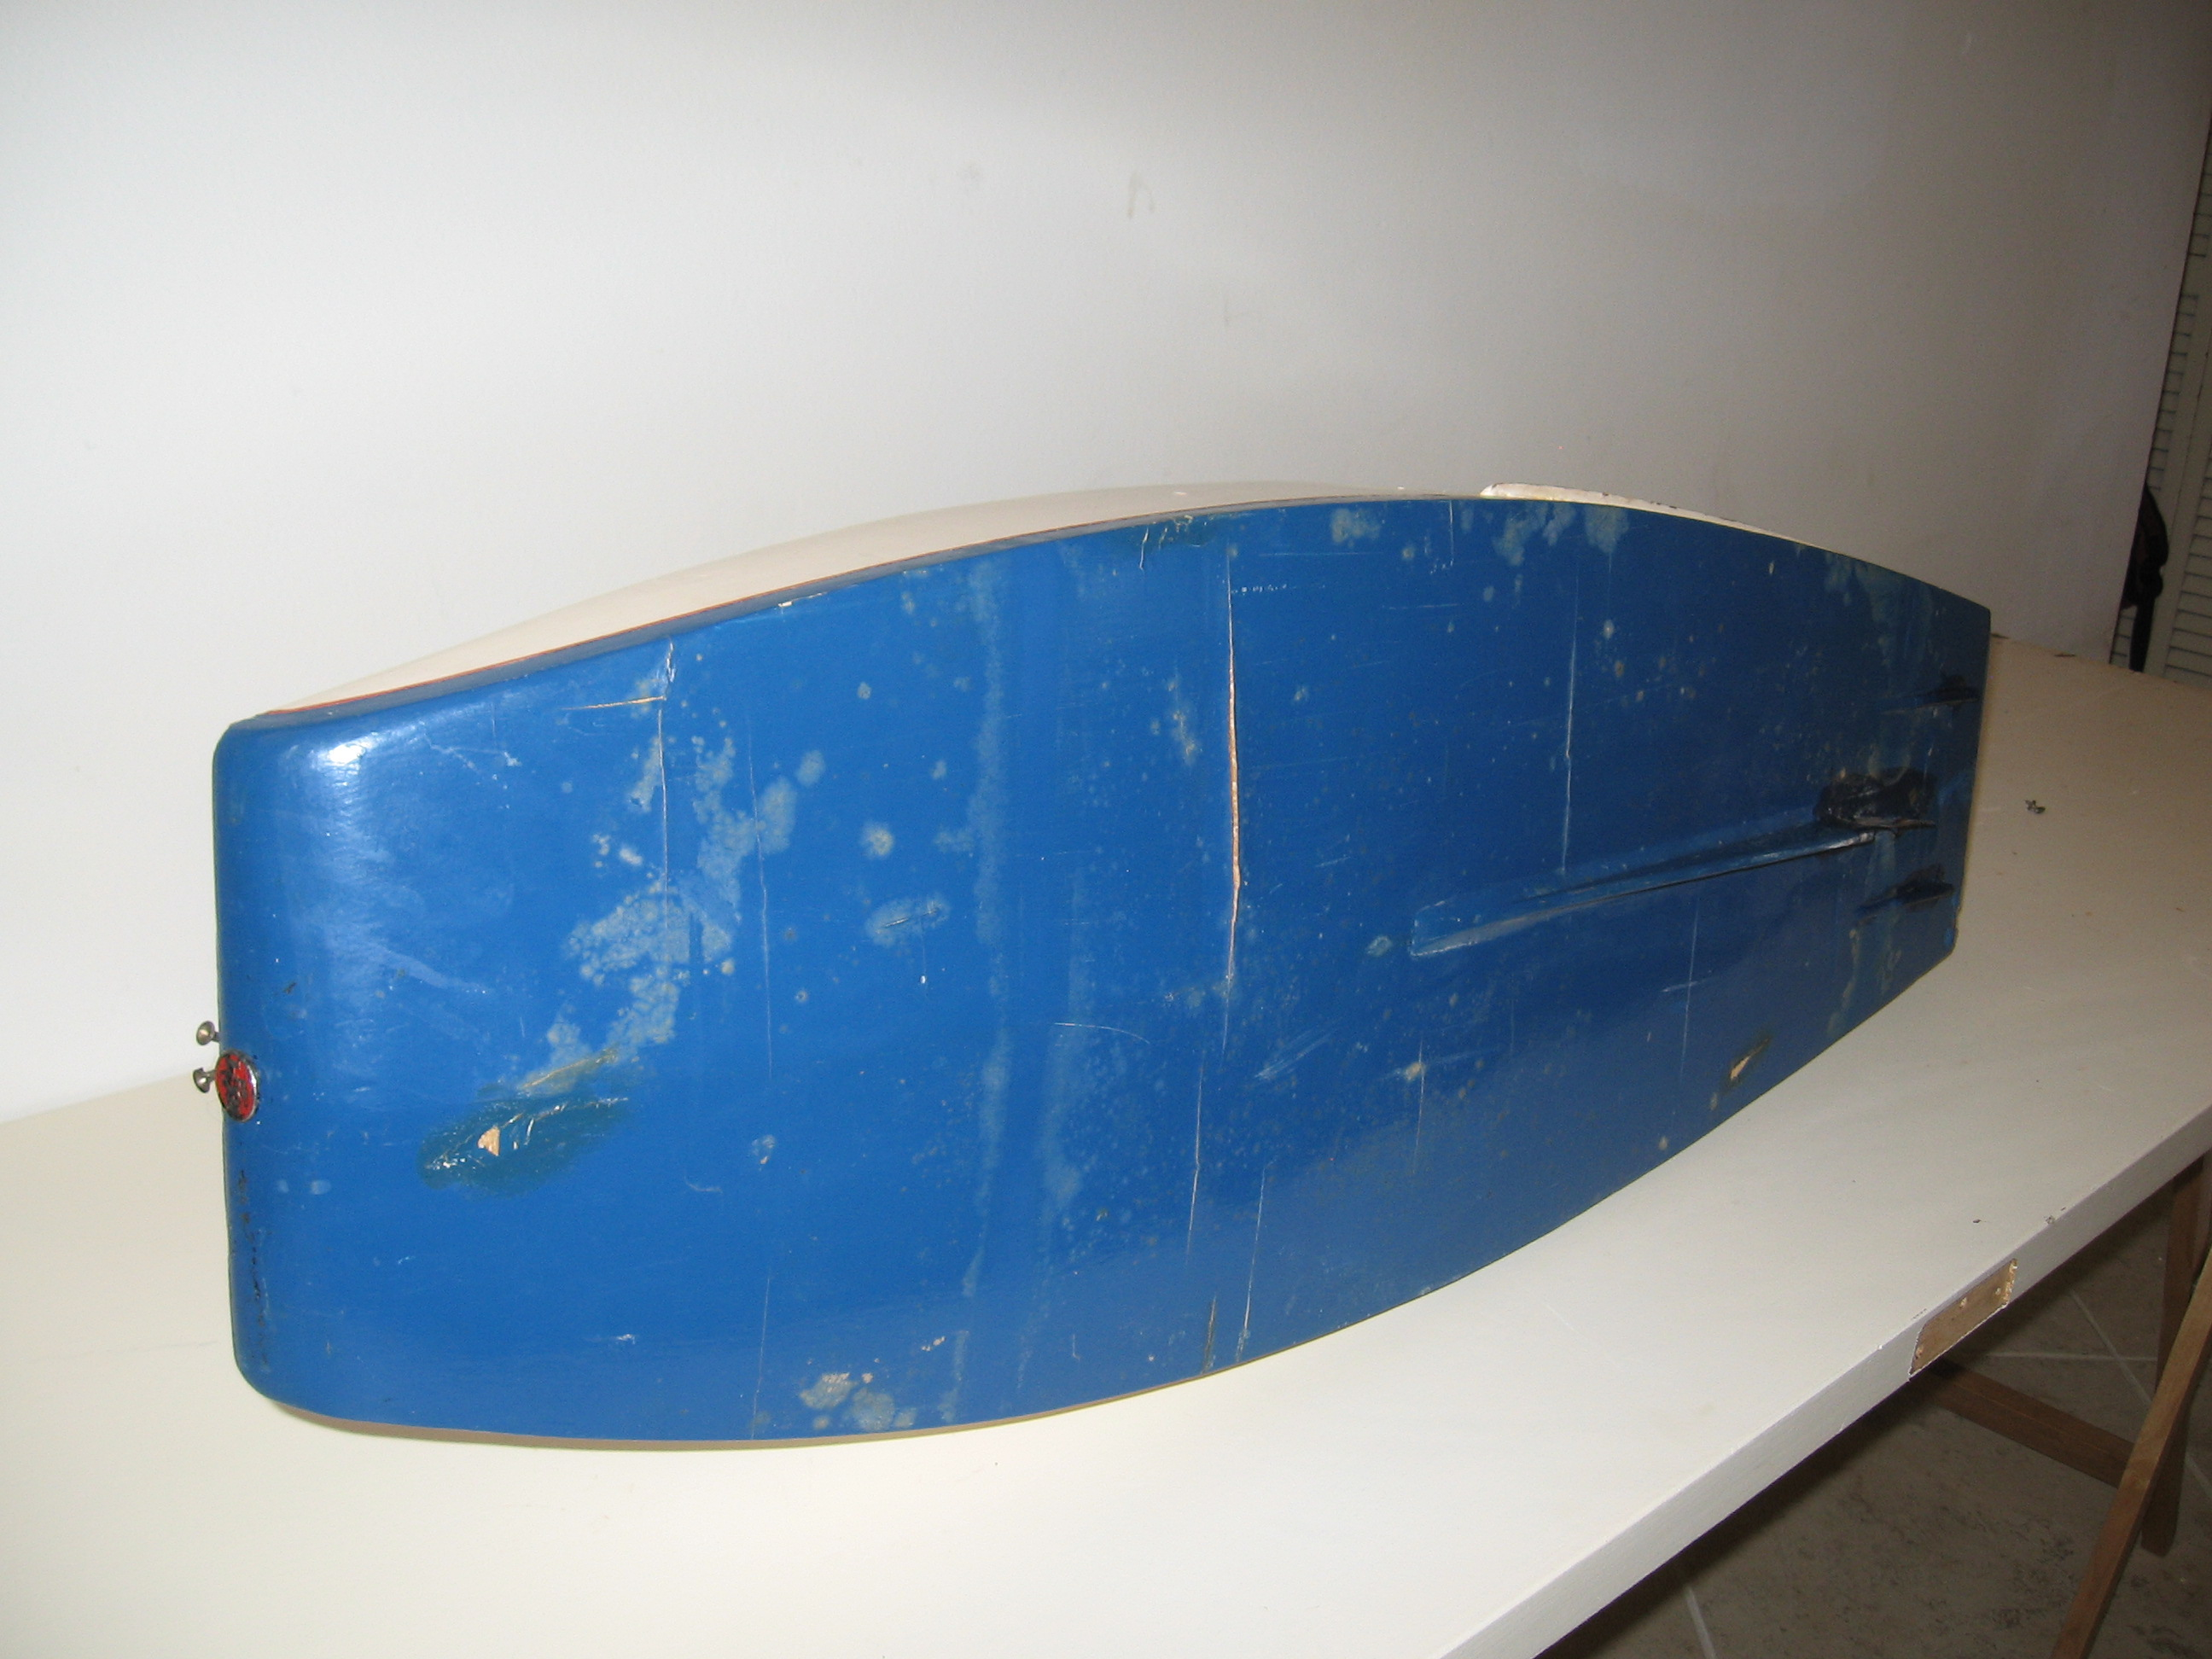 Click image for larger version  Name:RC boats 011.JPG Views:48 Size:923.1 KB ID:1977808